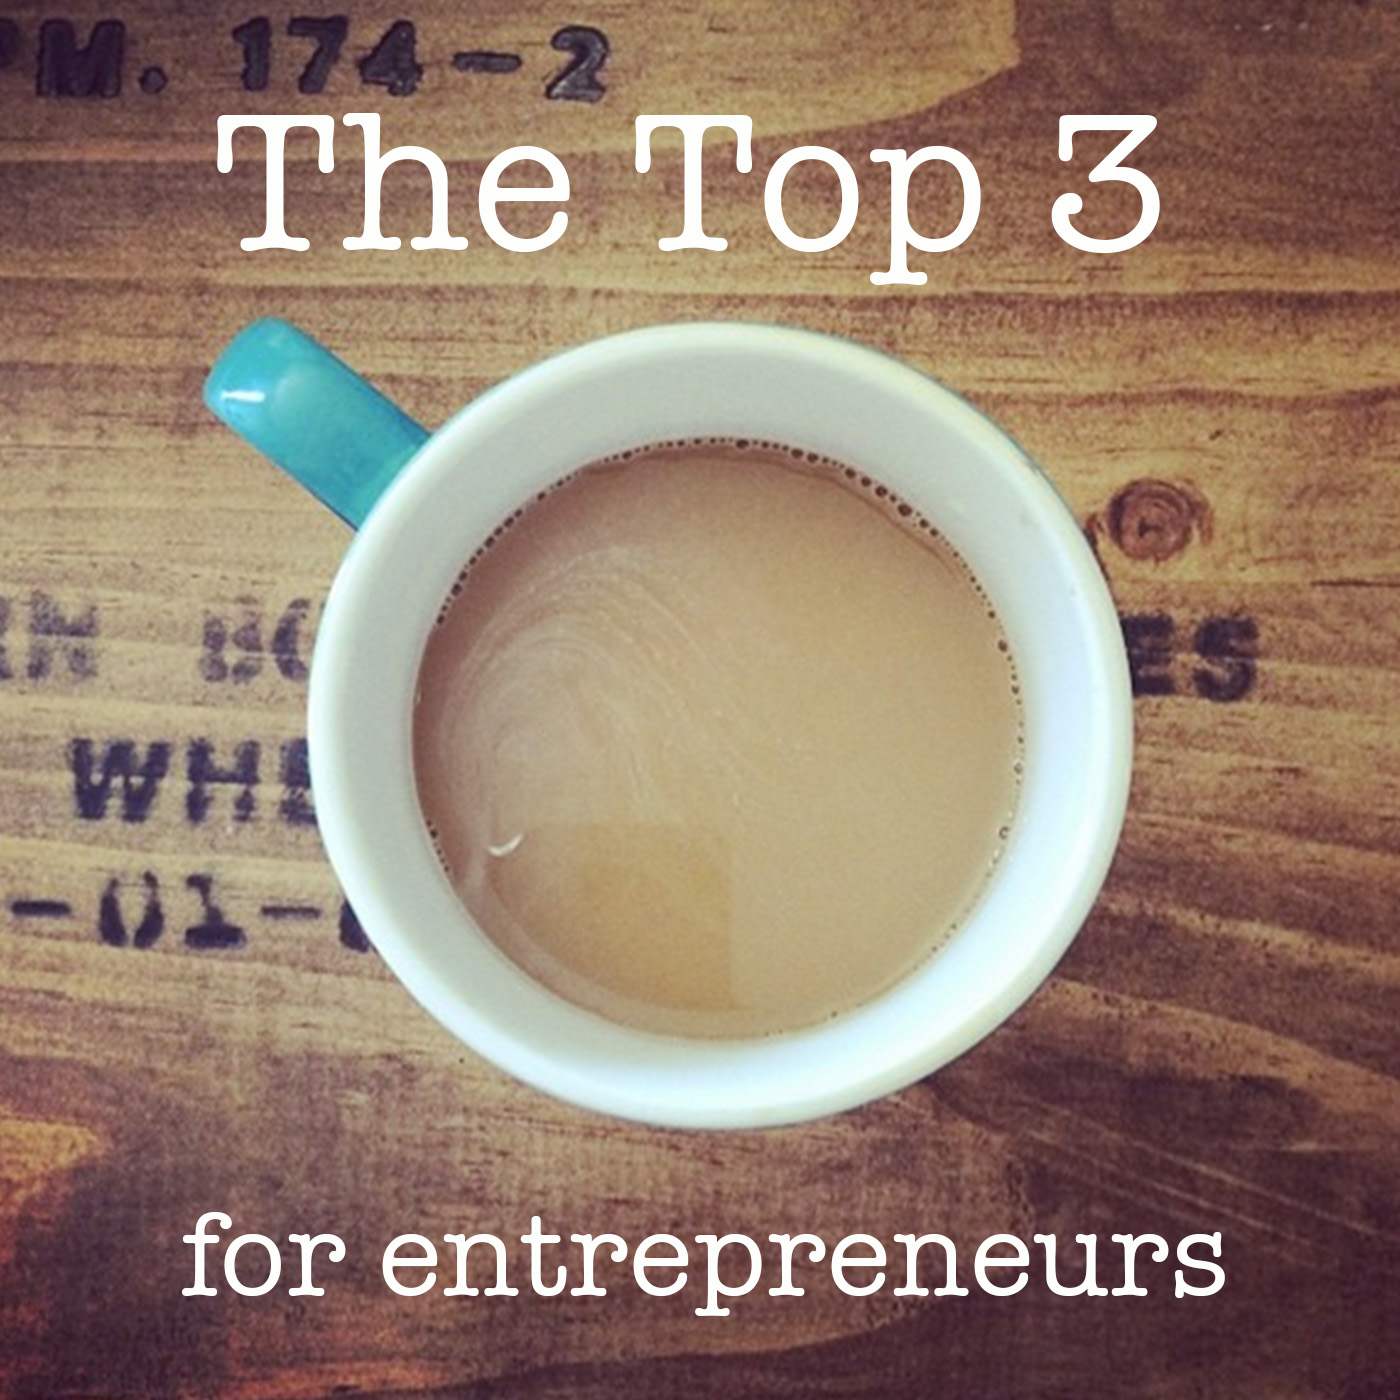 Ep 26: Heather Marie - Top 3 Tips for Starting A Tech Company In The Fashion Space